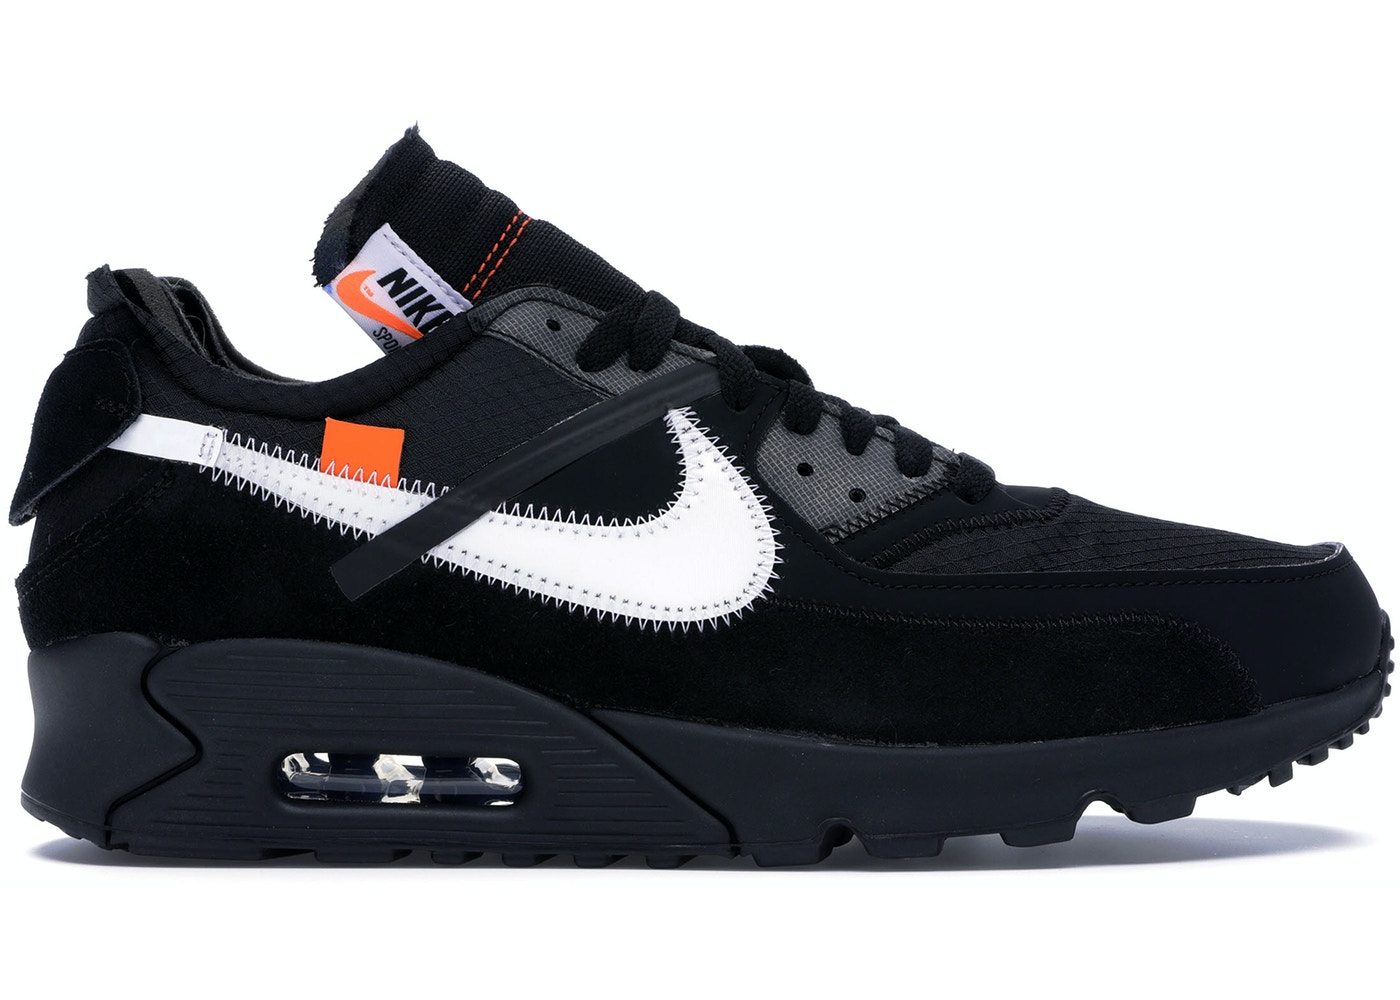 Húmedo perfume Sicilia  Nike Air Max 90 OFF-WHITE Black - AA7293-001